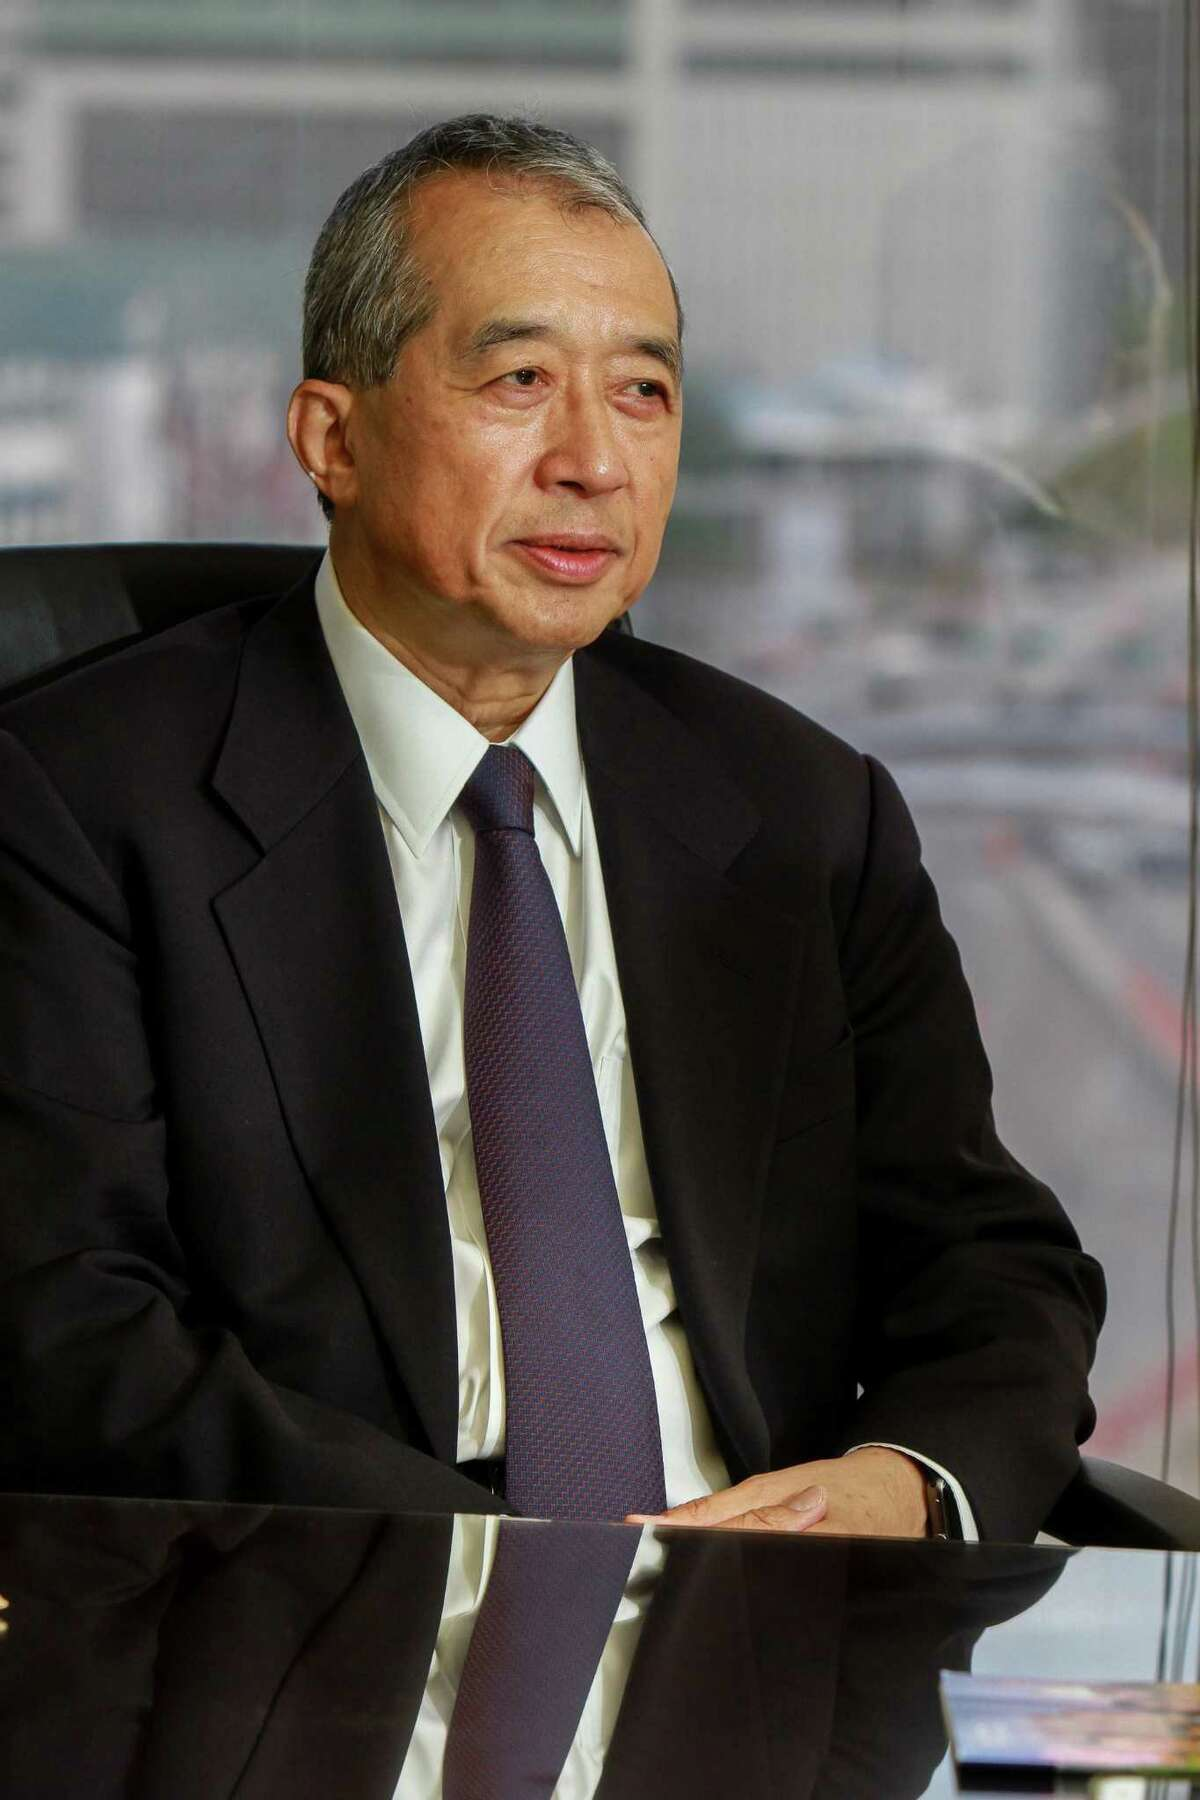 Albert Chao, CEO of Westlake Chemical. The Houston chemical company saw its full-year 2018 profits fall as its feedstock costs jumped and low prices impacted fourth quarter income. NEXT: See earnings from energy companies of interest to the Houston area.